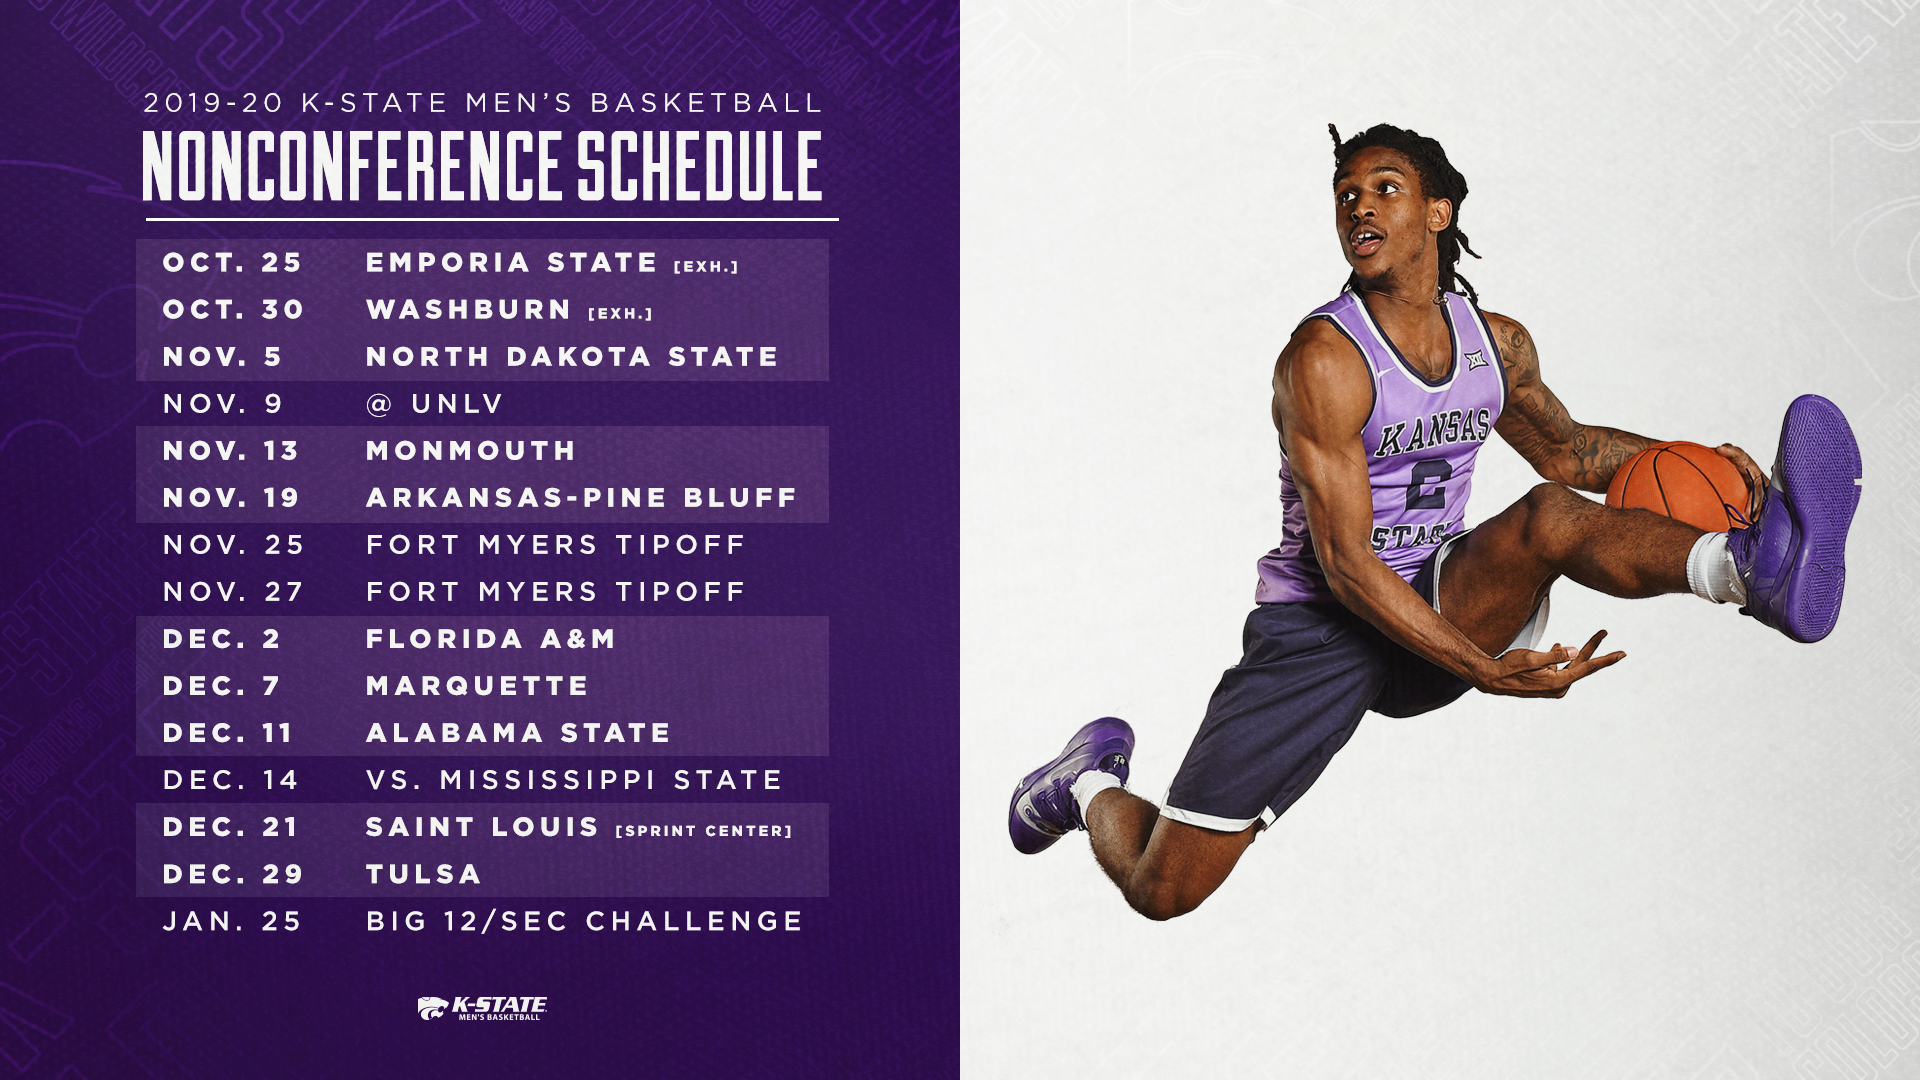 photograph relating to Ku Basketball Schedule Printable referred to as 9 Residence Video games Spotlight K-Claims 2019-20 Non-Meeting